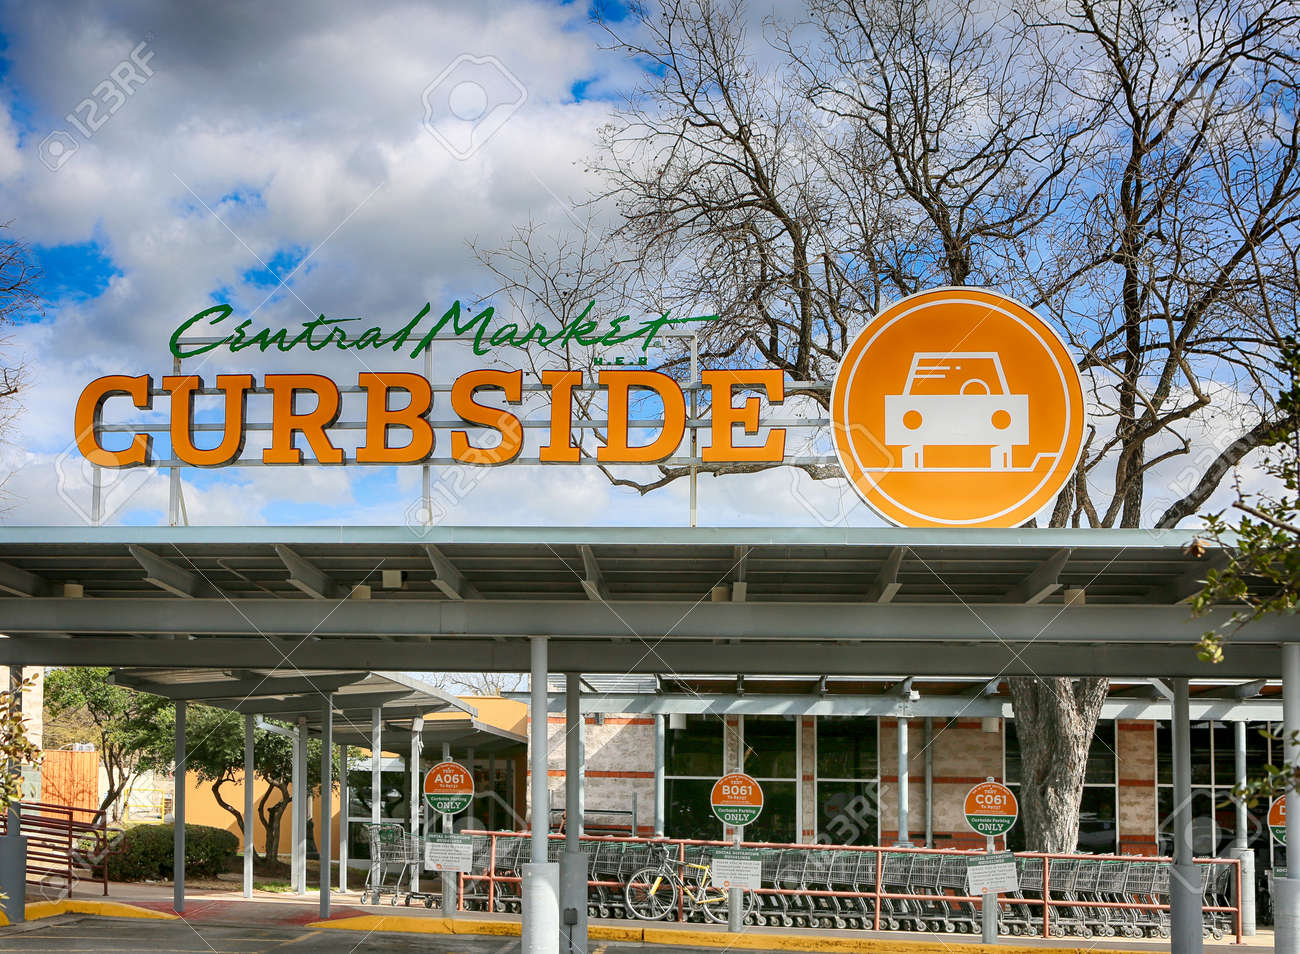 March 10, 2021, Austin, Texas. CURBSIDE sign at Central Market. Central Market is an American gourmet grocery store chain owned by H-E-B Grocery Company. - 165537321